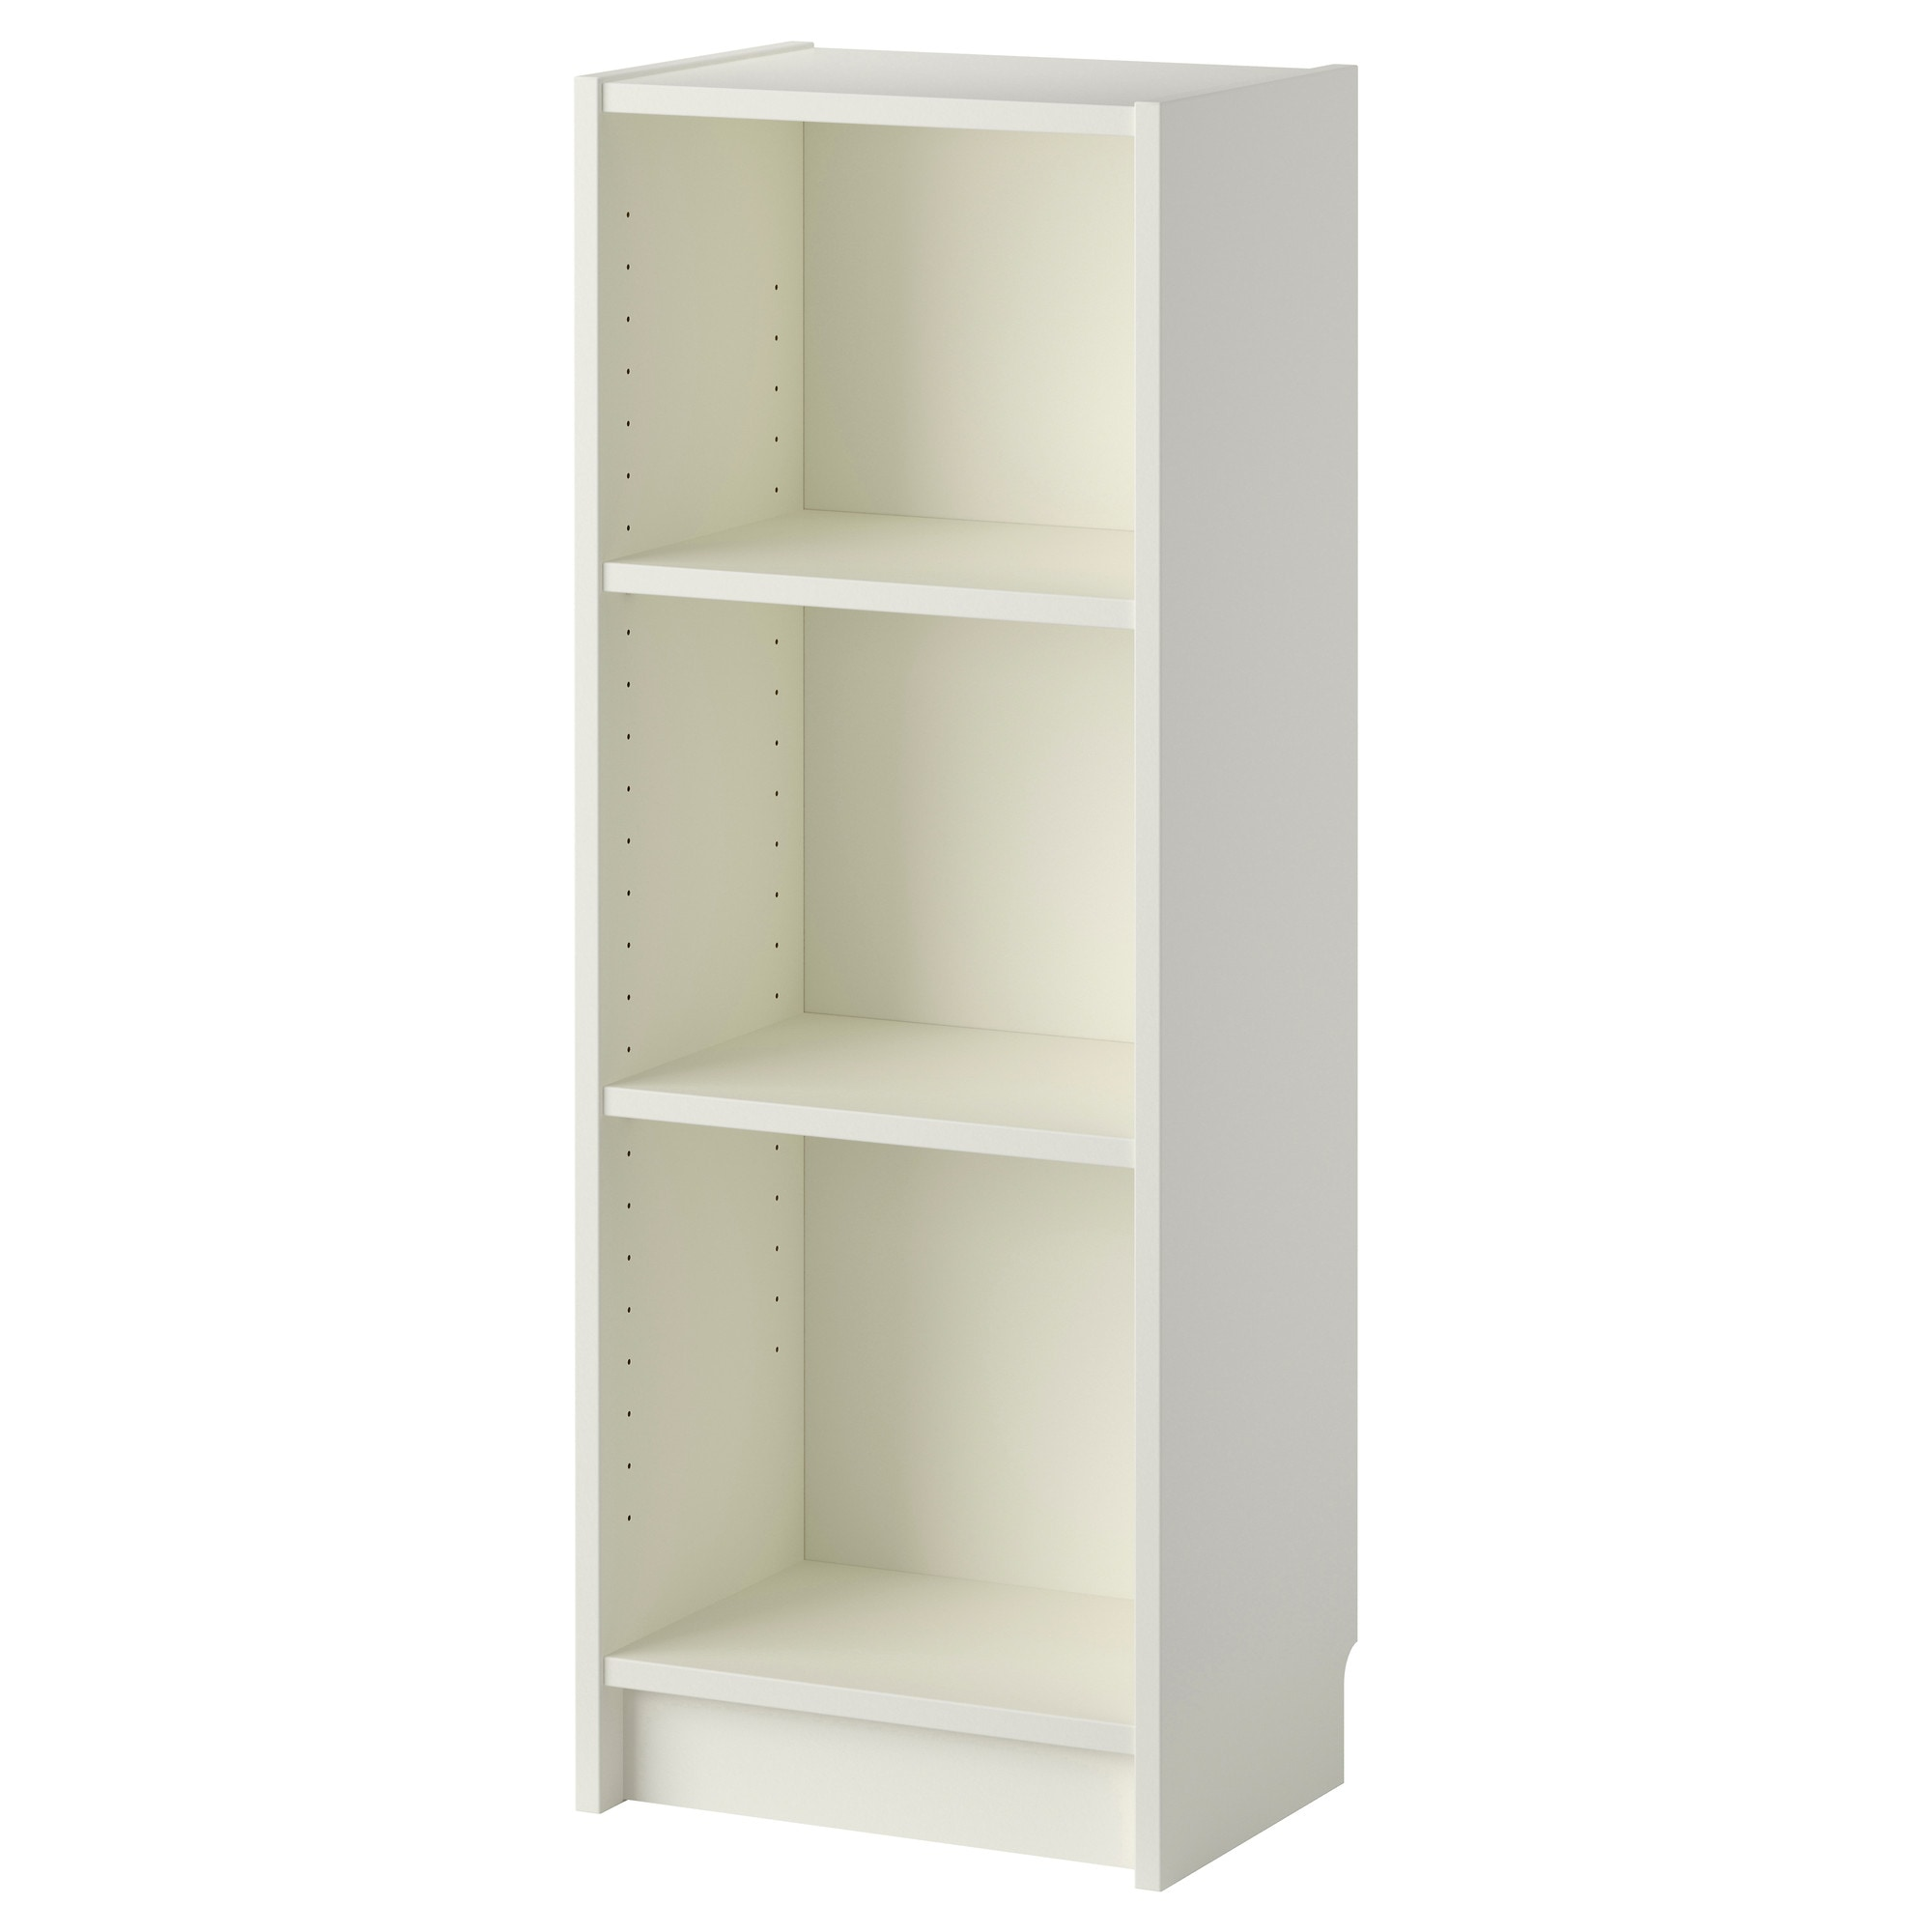 wood a for natural hemnes bookshelf products furniture en brown solid has ikea gb white shelf bookcases high storage small fixed bookcase stability light feel